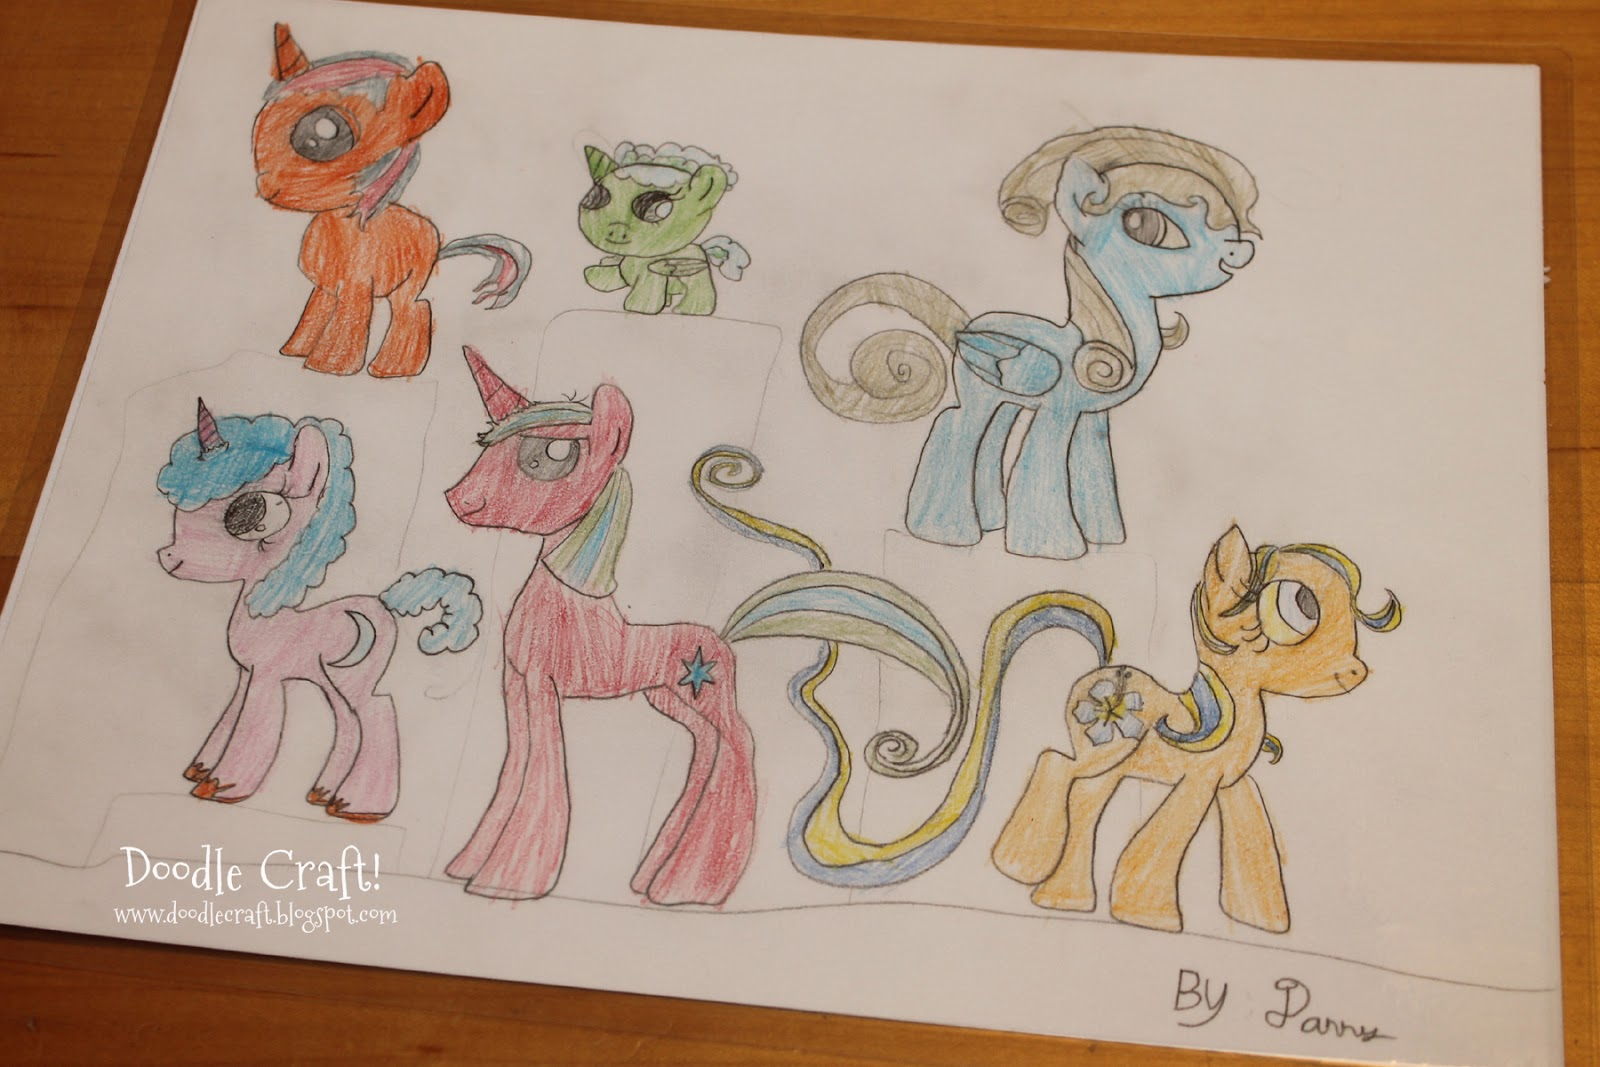 Drawn my little pony 10 year old Actually enjoyed too!) really do